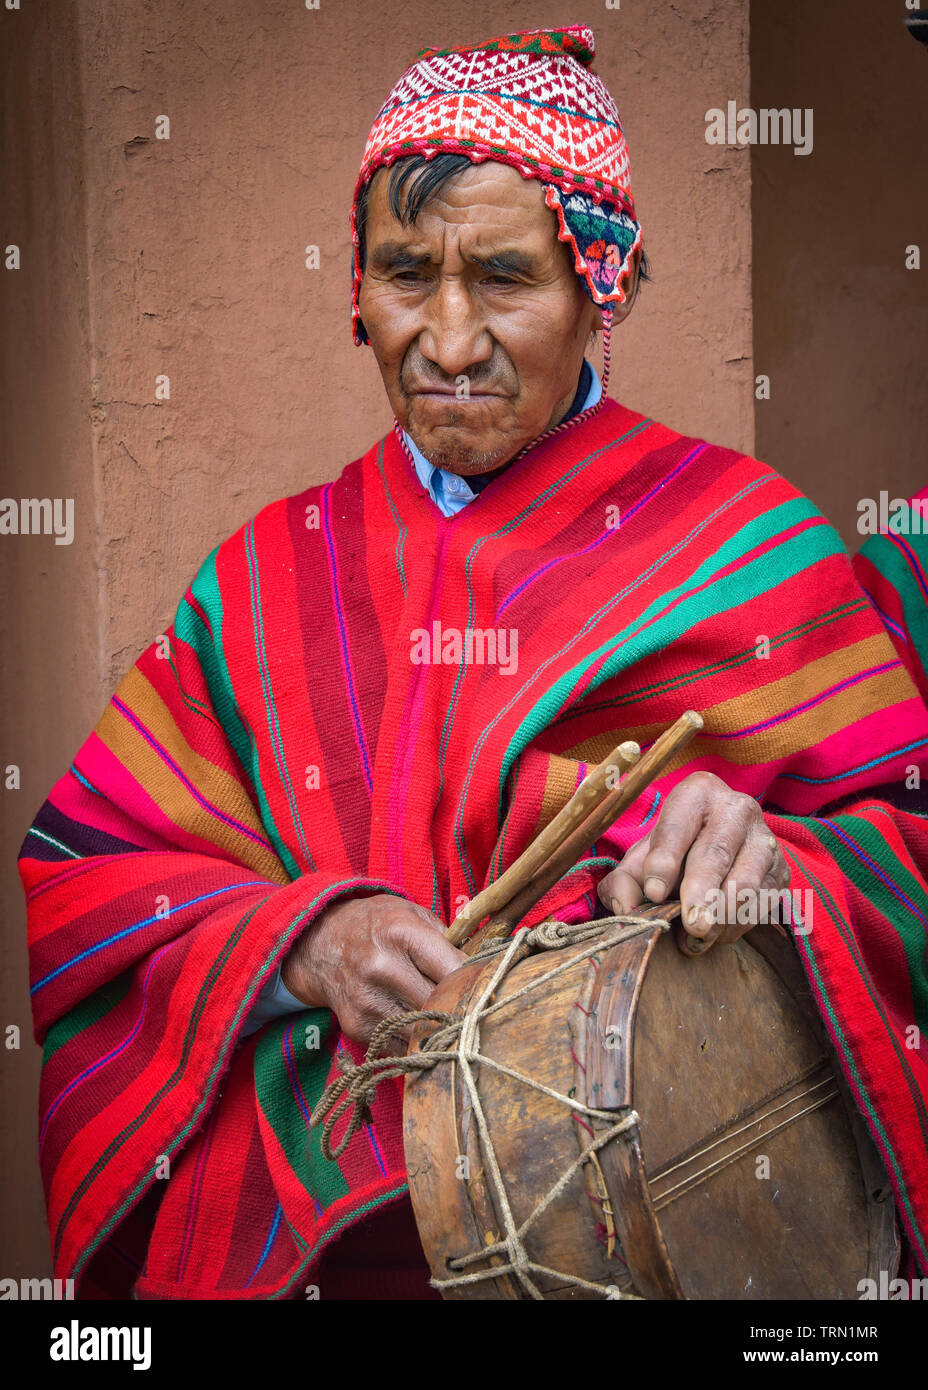 Sacred Valley, Cusco, Peru - Oct 13, 2018: An indigenous Quechua man in traditional dress and drum - Stock Image